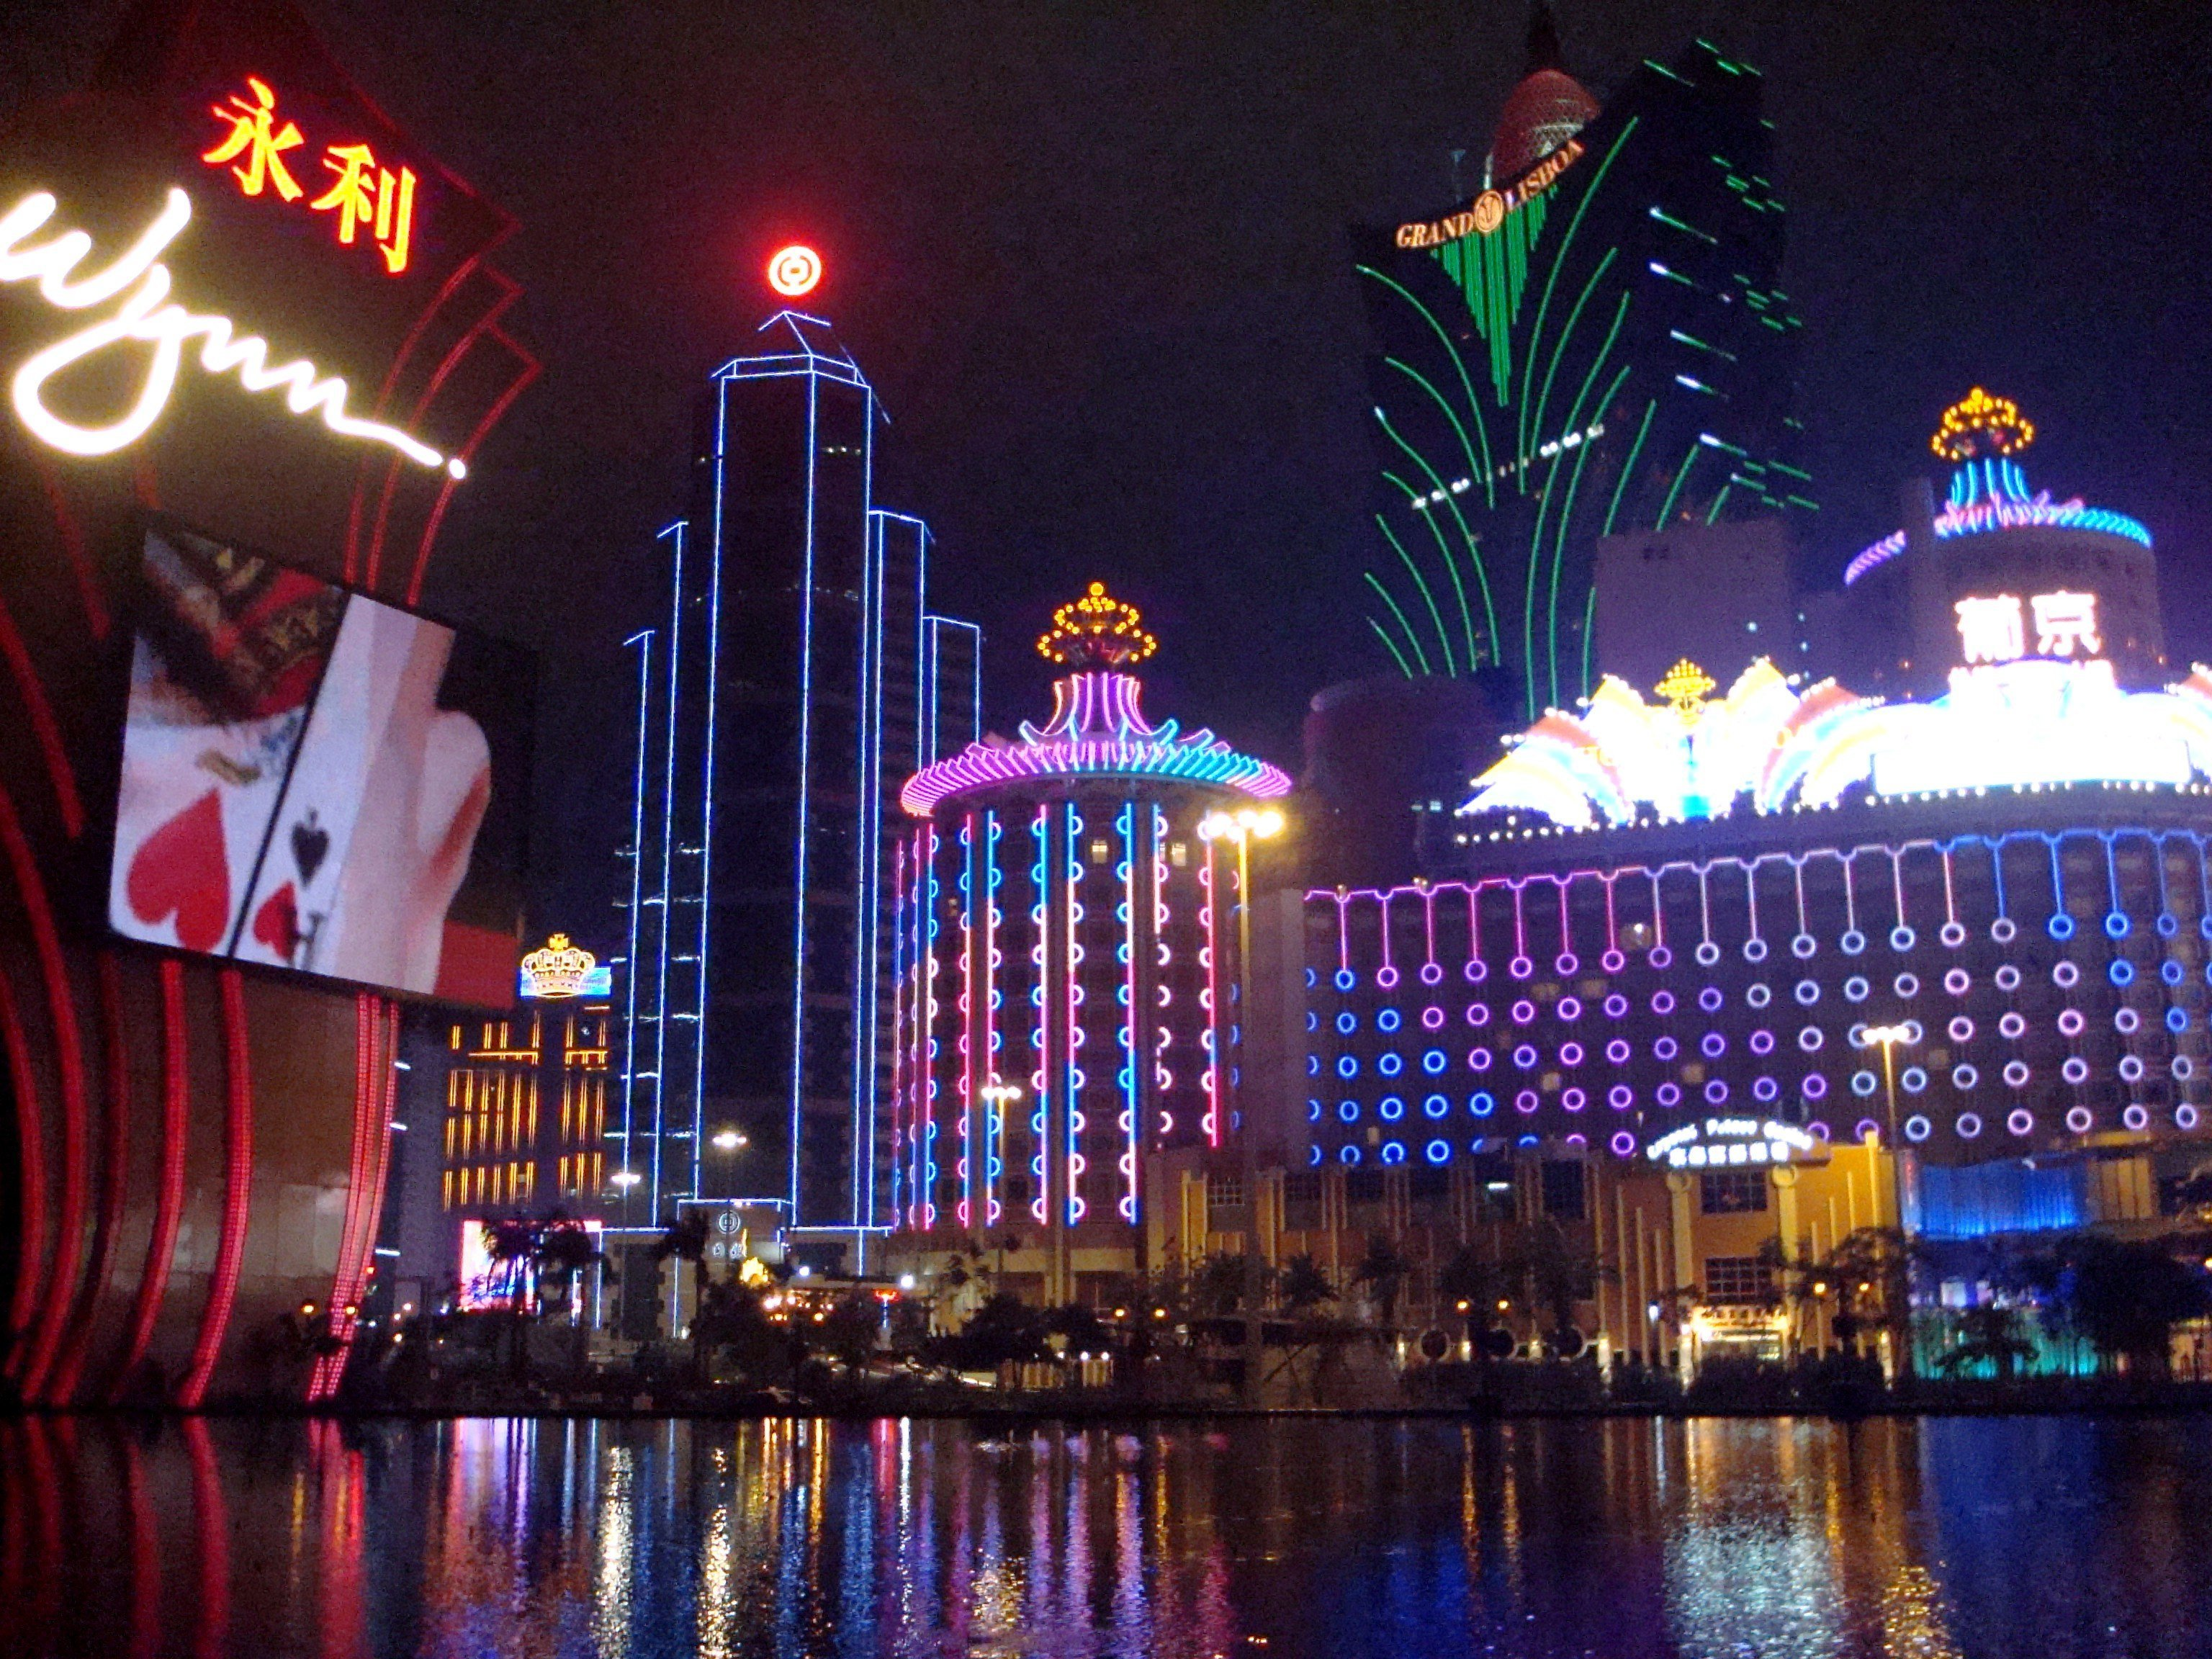 Macau Casino Owners